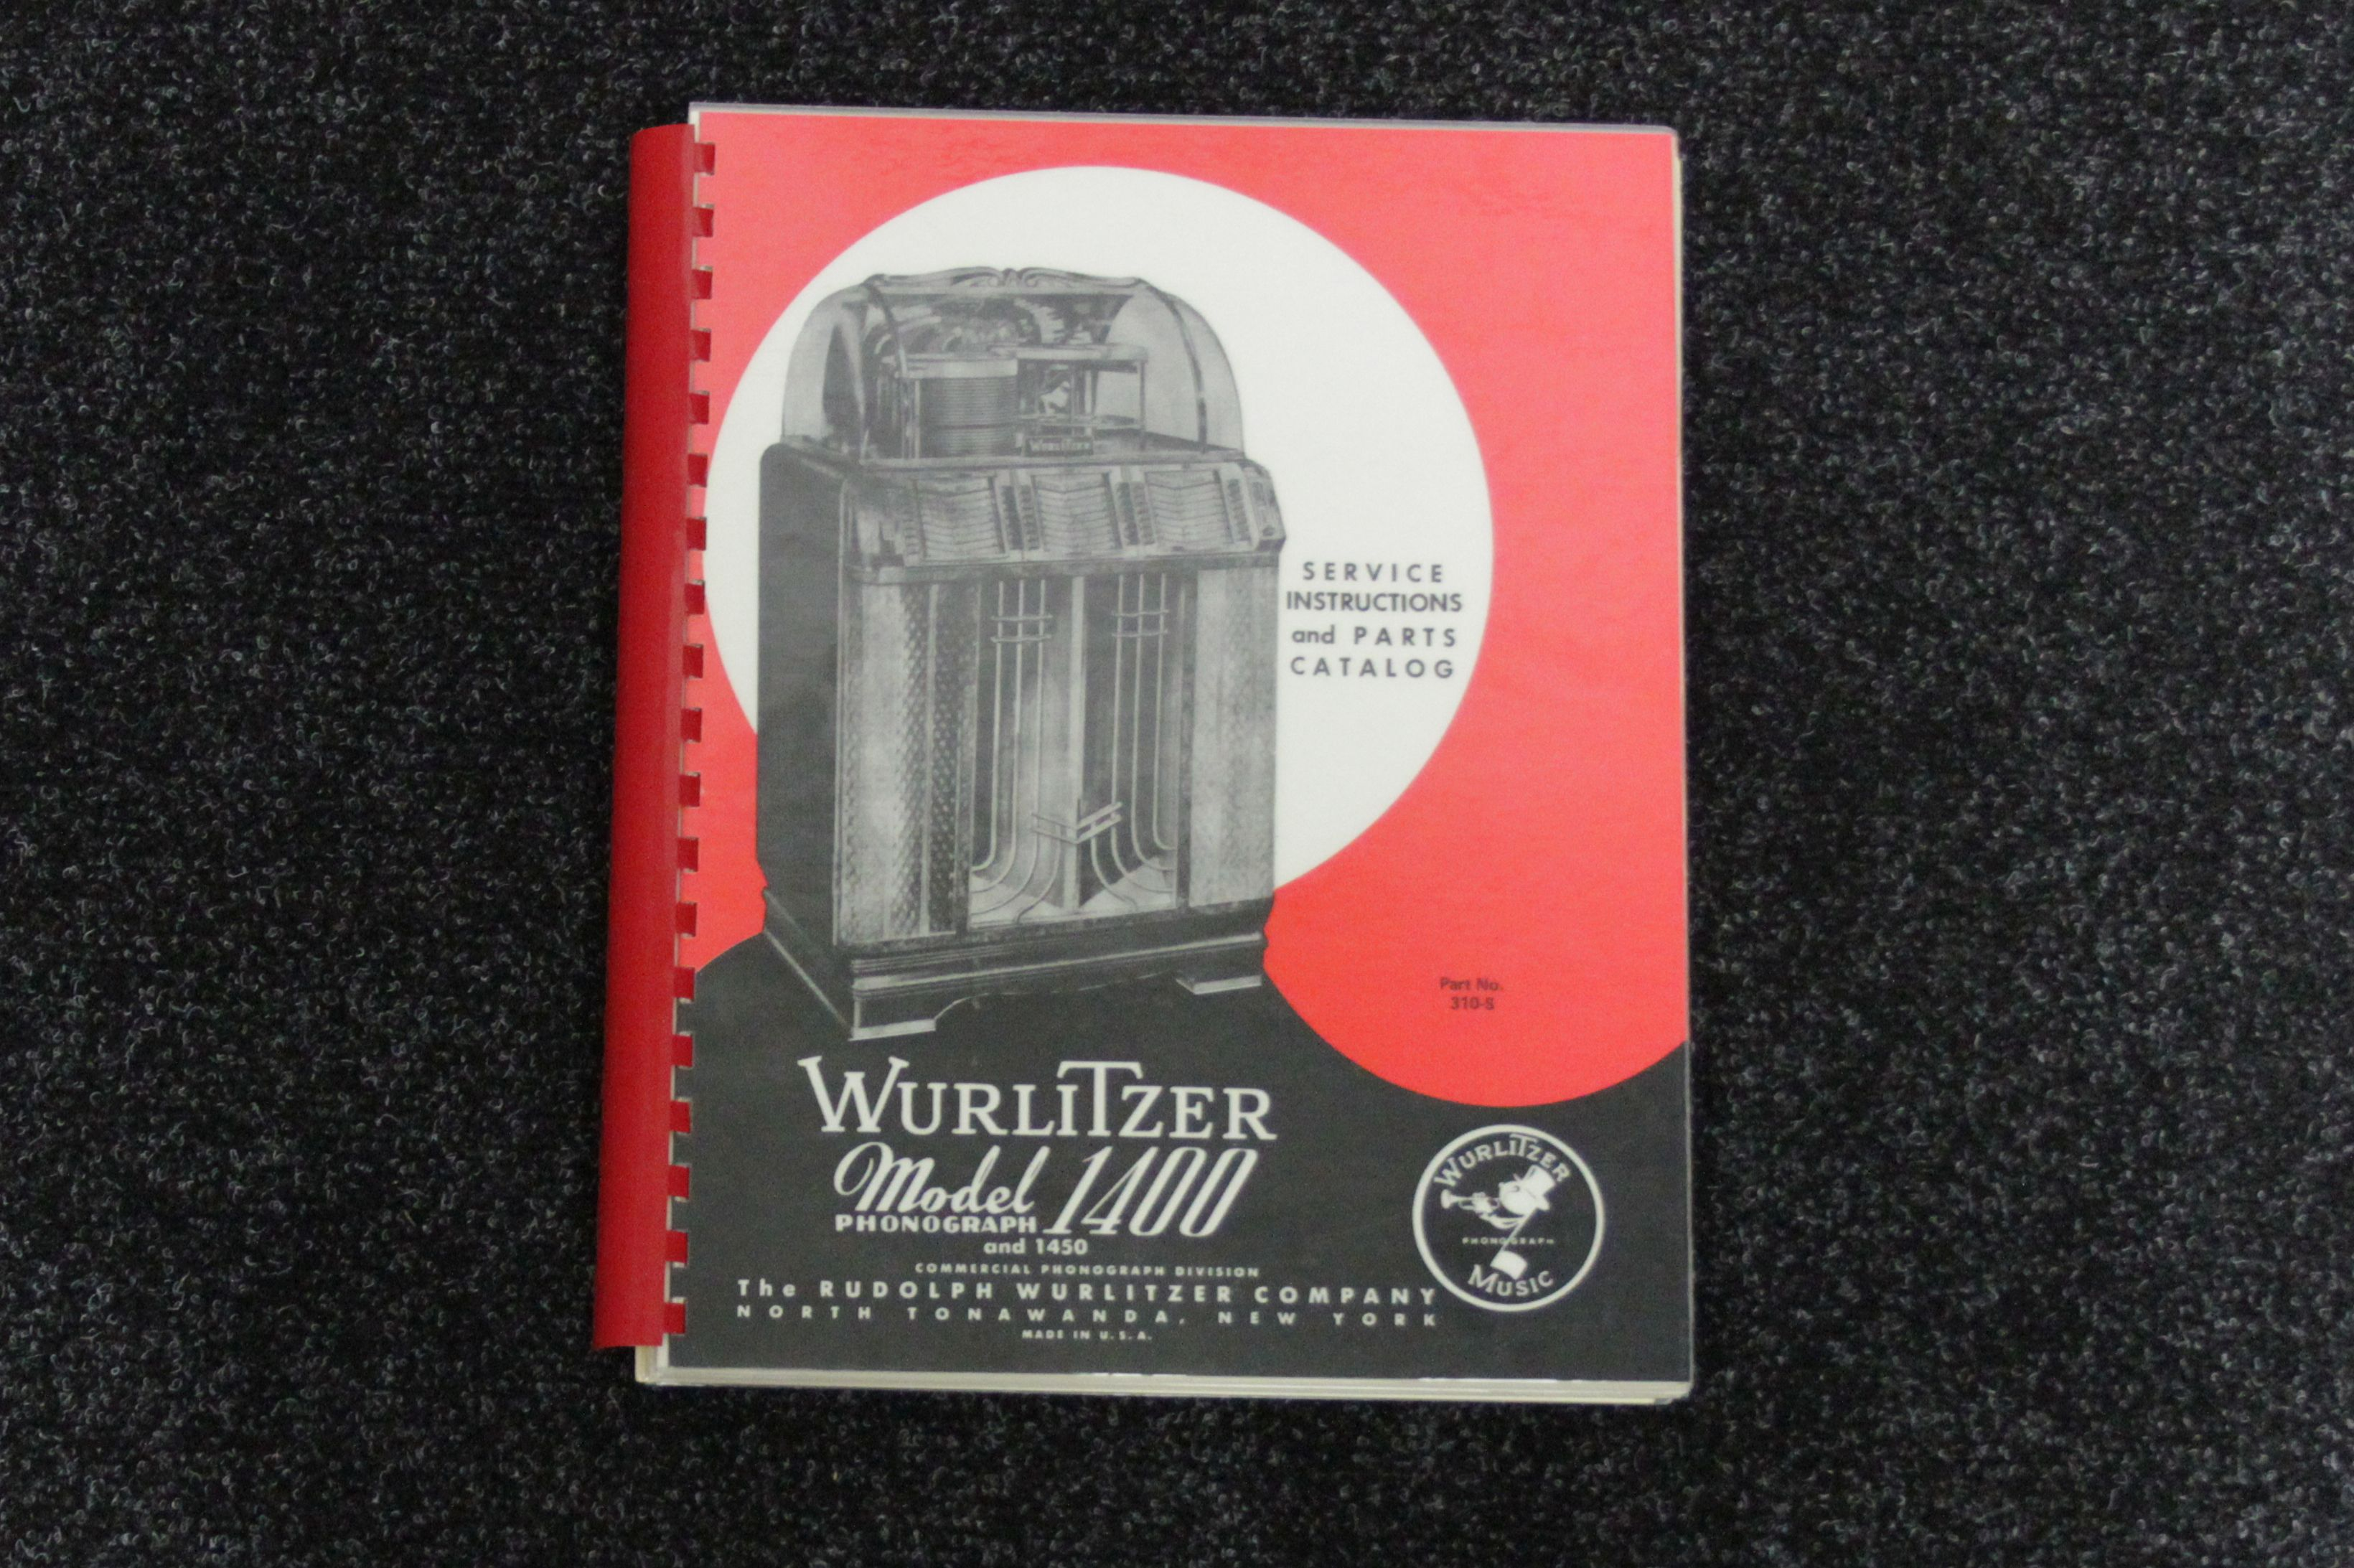 Wurlitzer Service Manual 1400